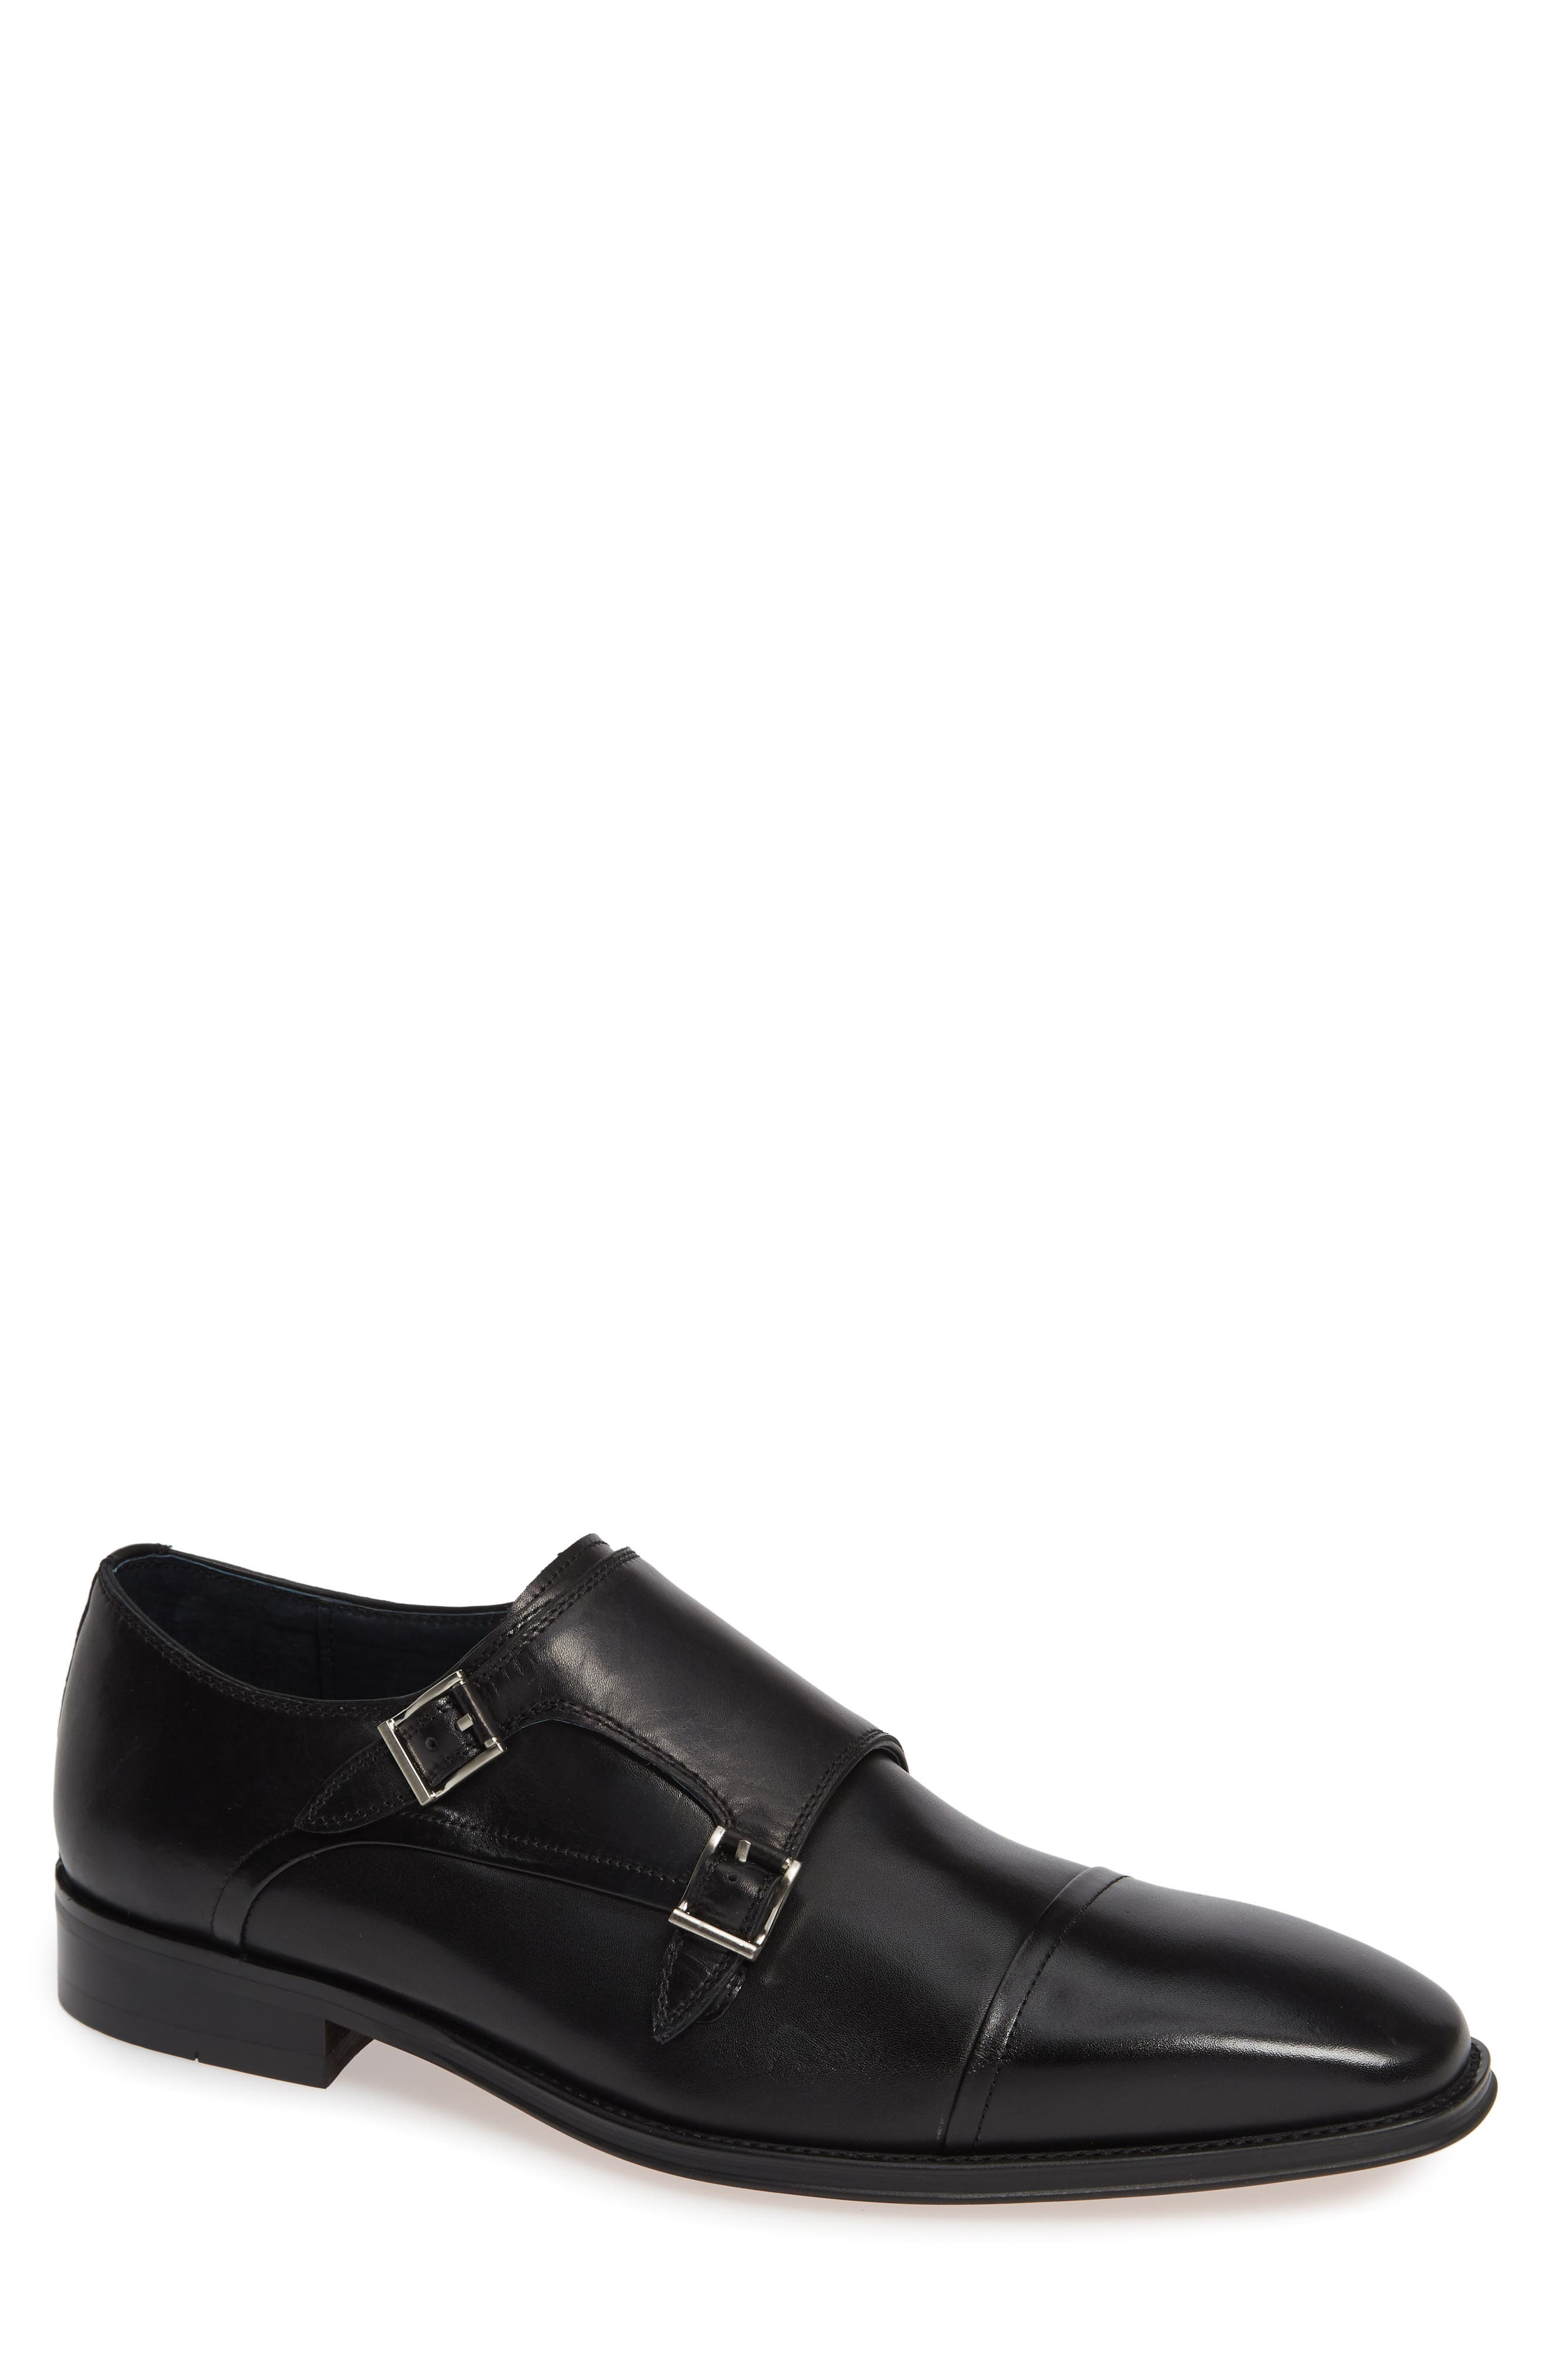 Mario Double Monk Strap Shoe,                             Main thumbnail 1, color,                             BLACK LEATHER